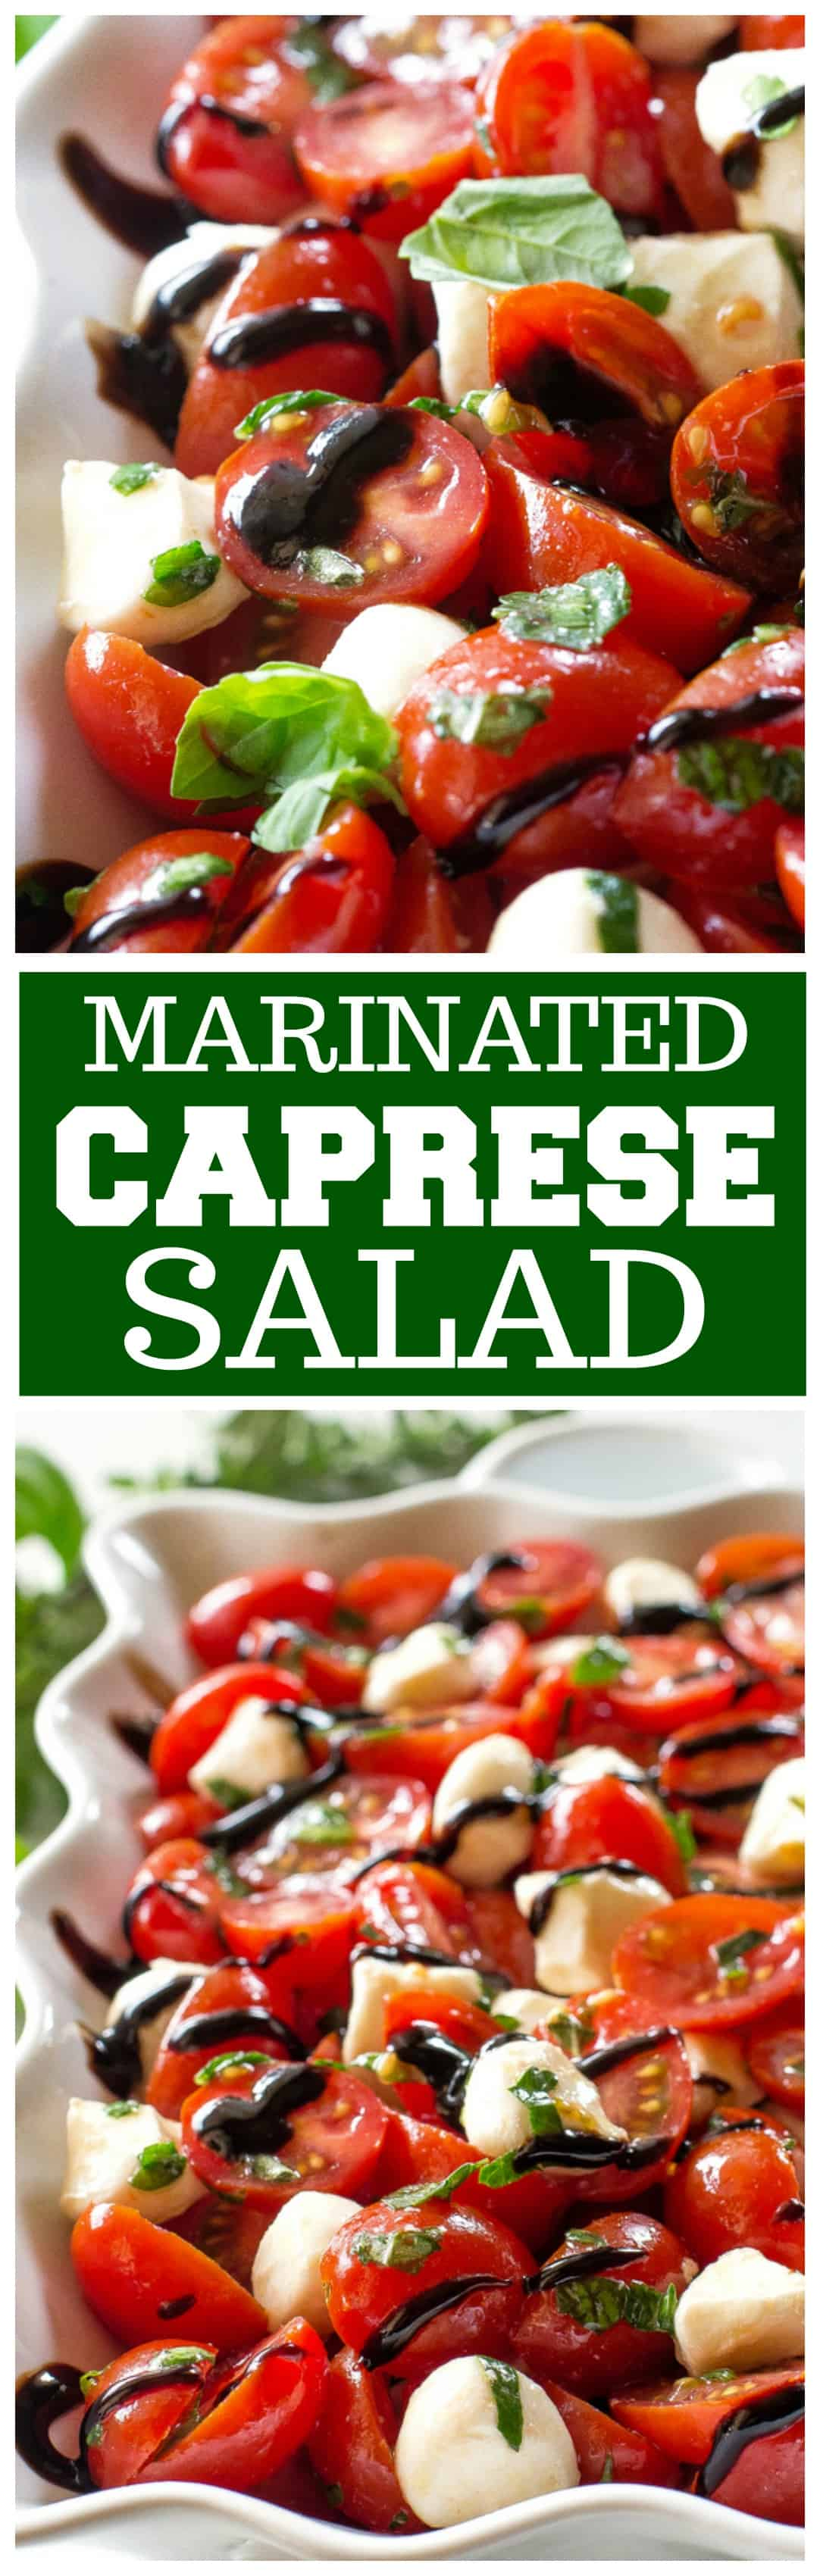 This Marinated Caprese Salad recipe is a great side dish. Marinated in balsamic dressing and herbs, it is bursting with flavor.